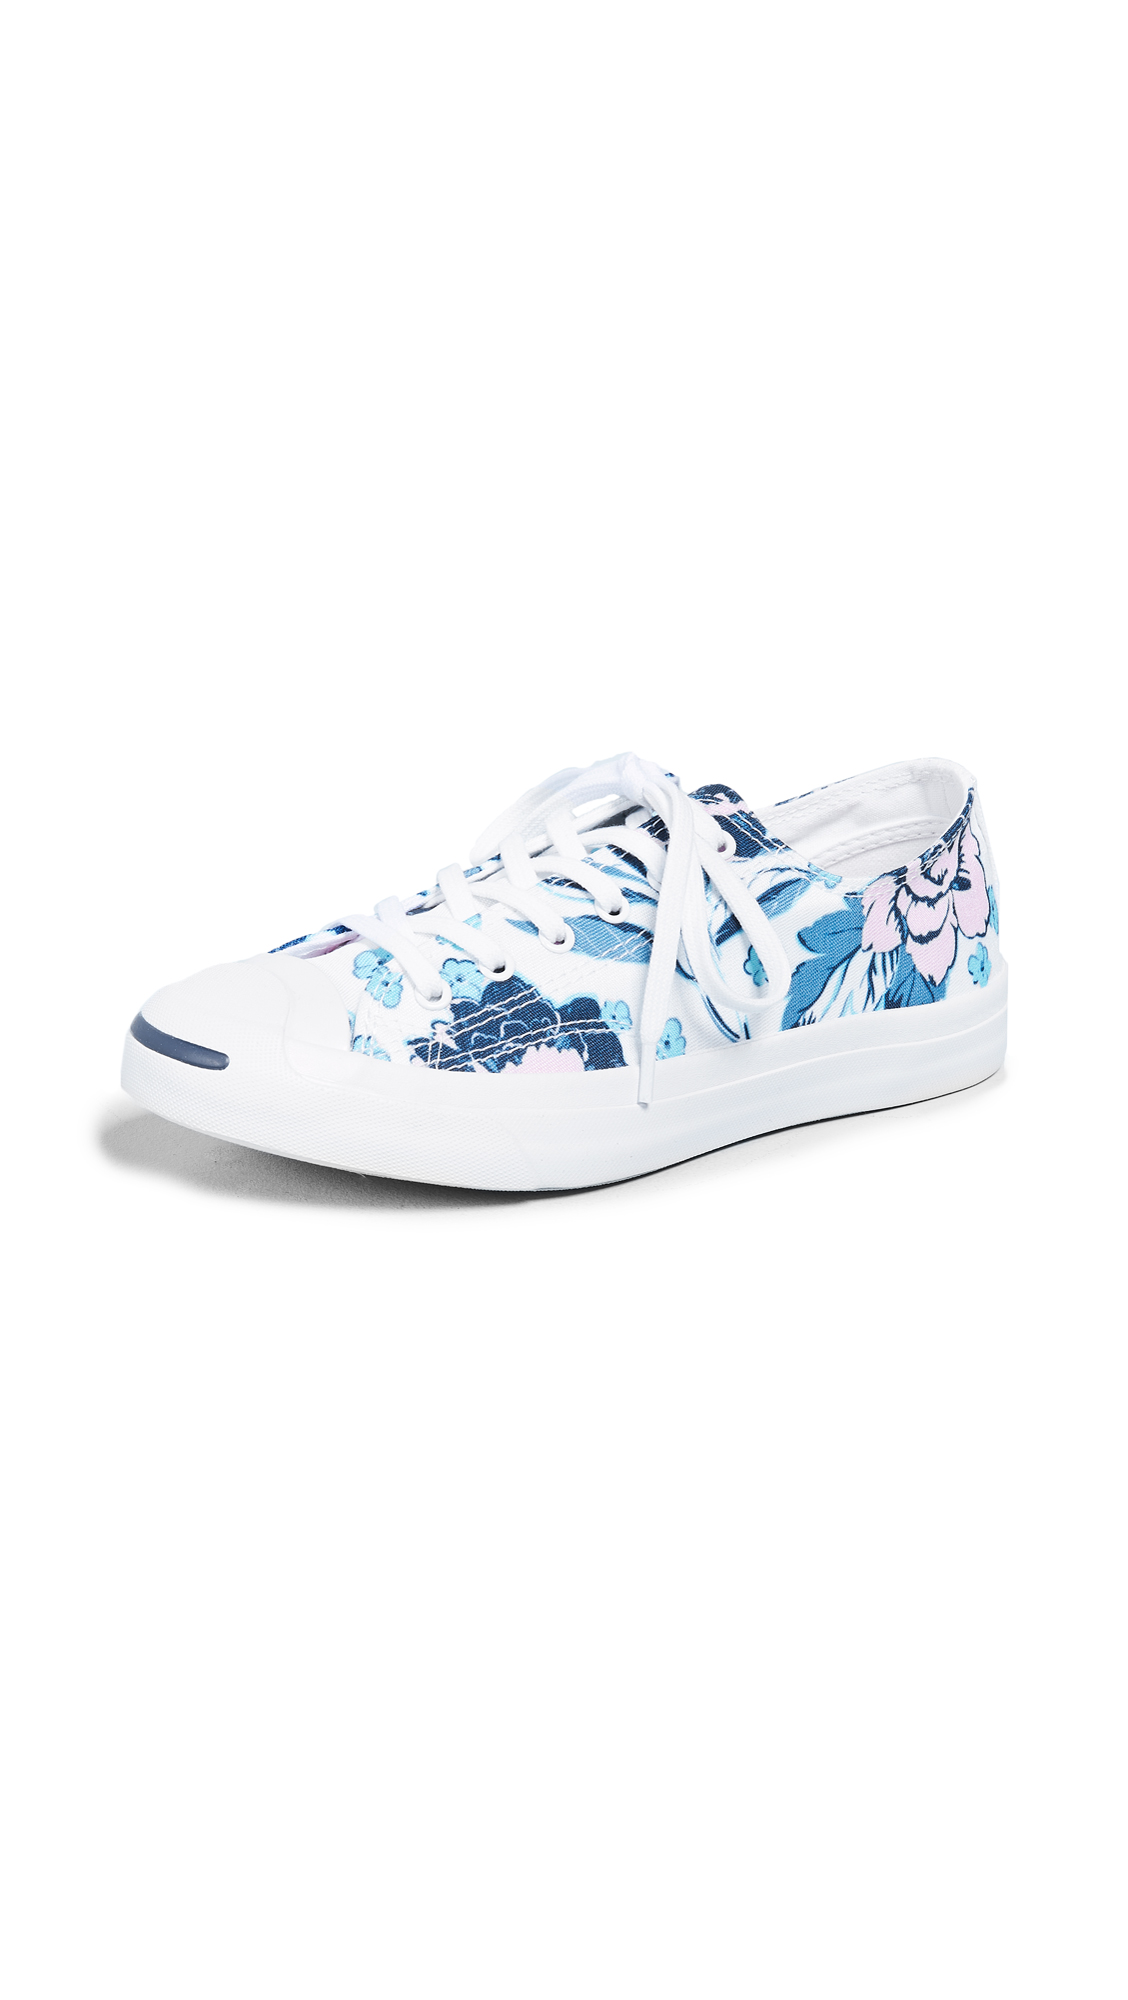 JACK PURCELL FLORAL PRINT SNEAKERS